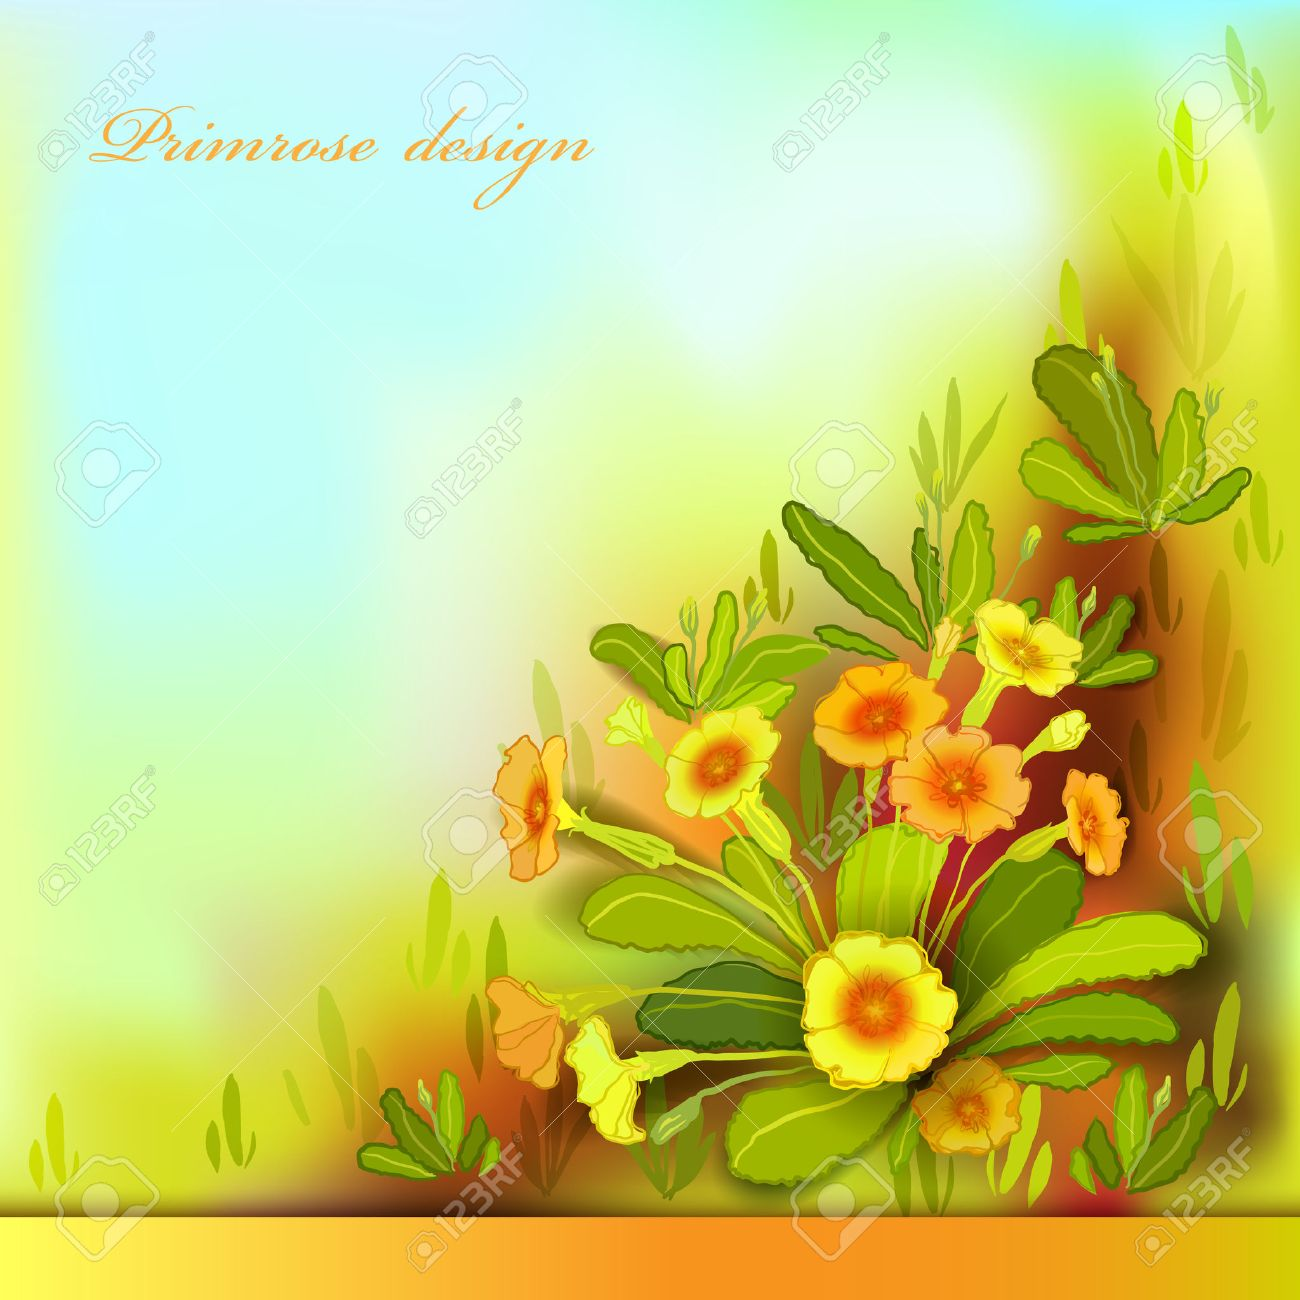 Spring Summer Flowers Yellow Orange Floral Background Horizontal Border Frame With Primroses And